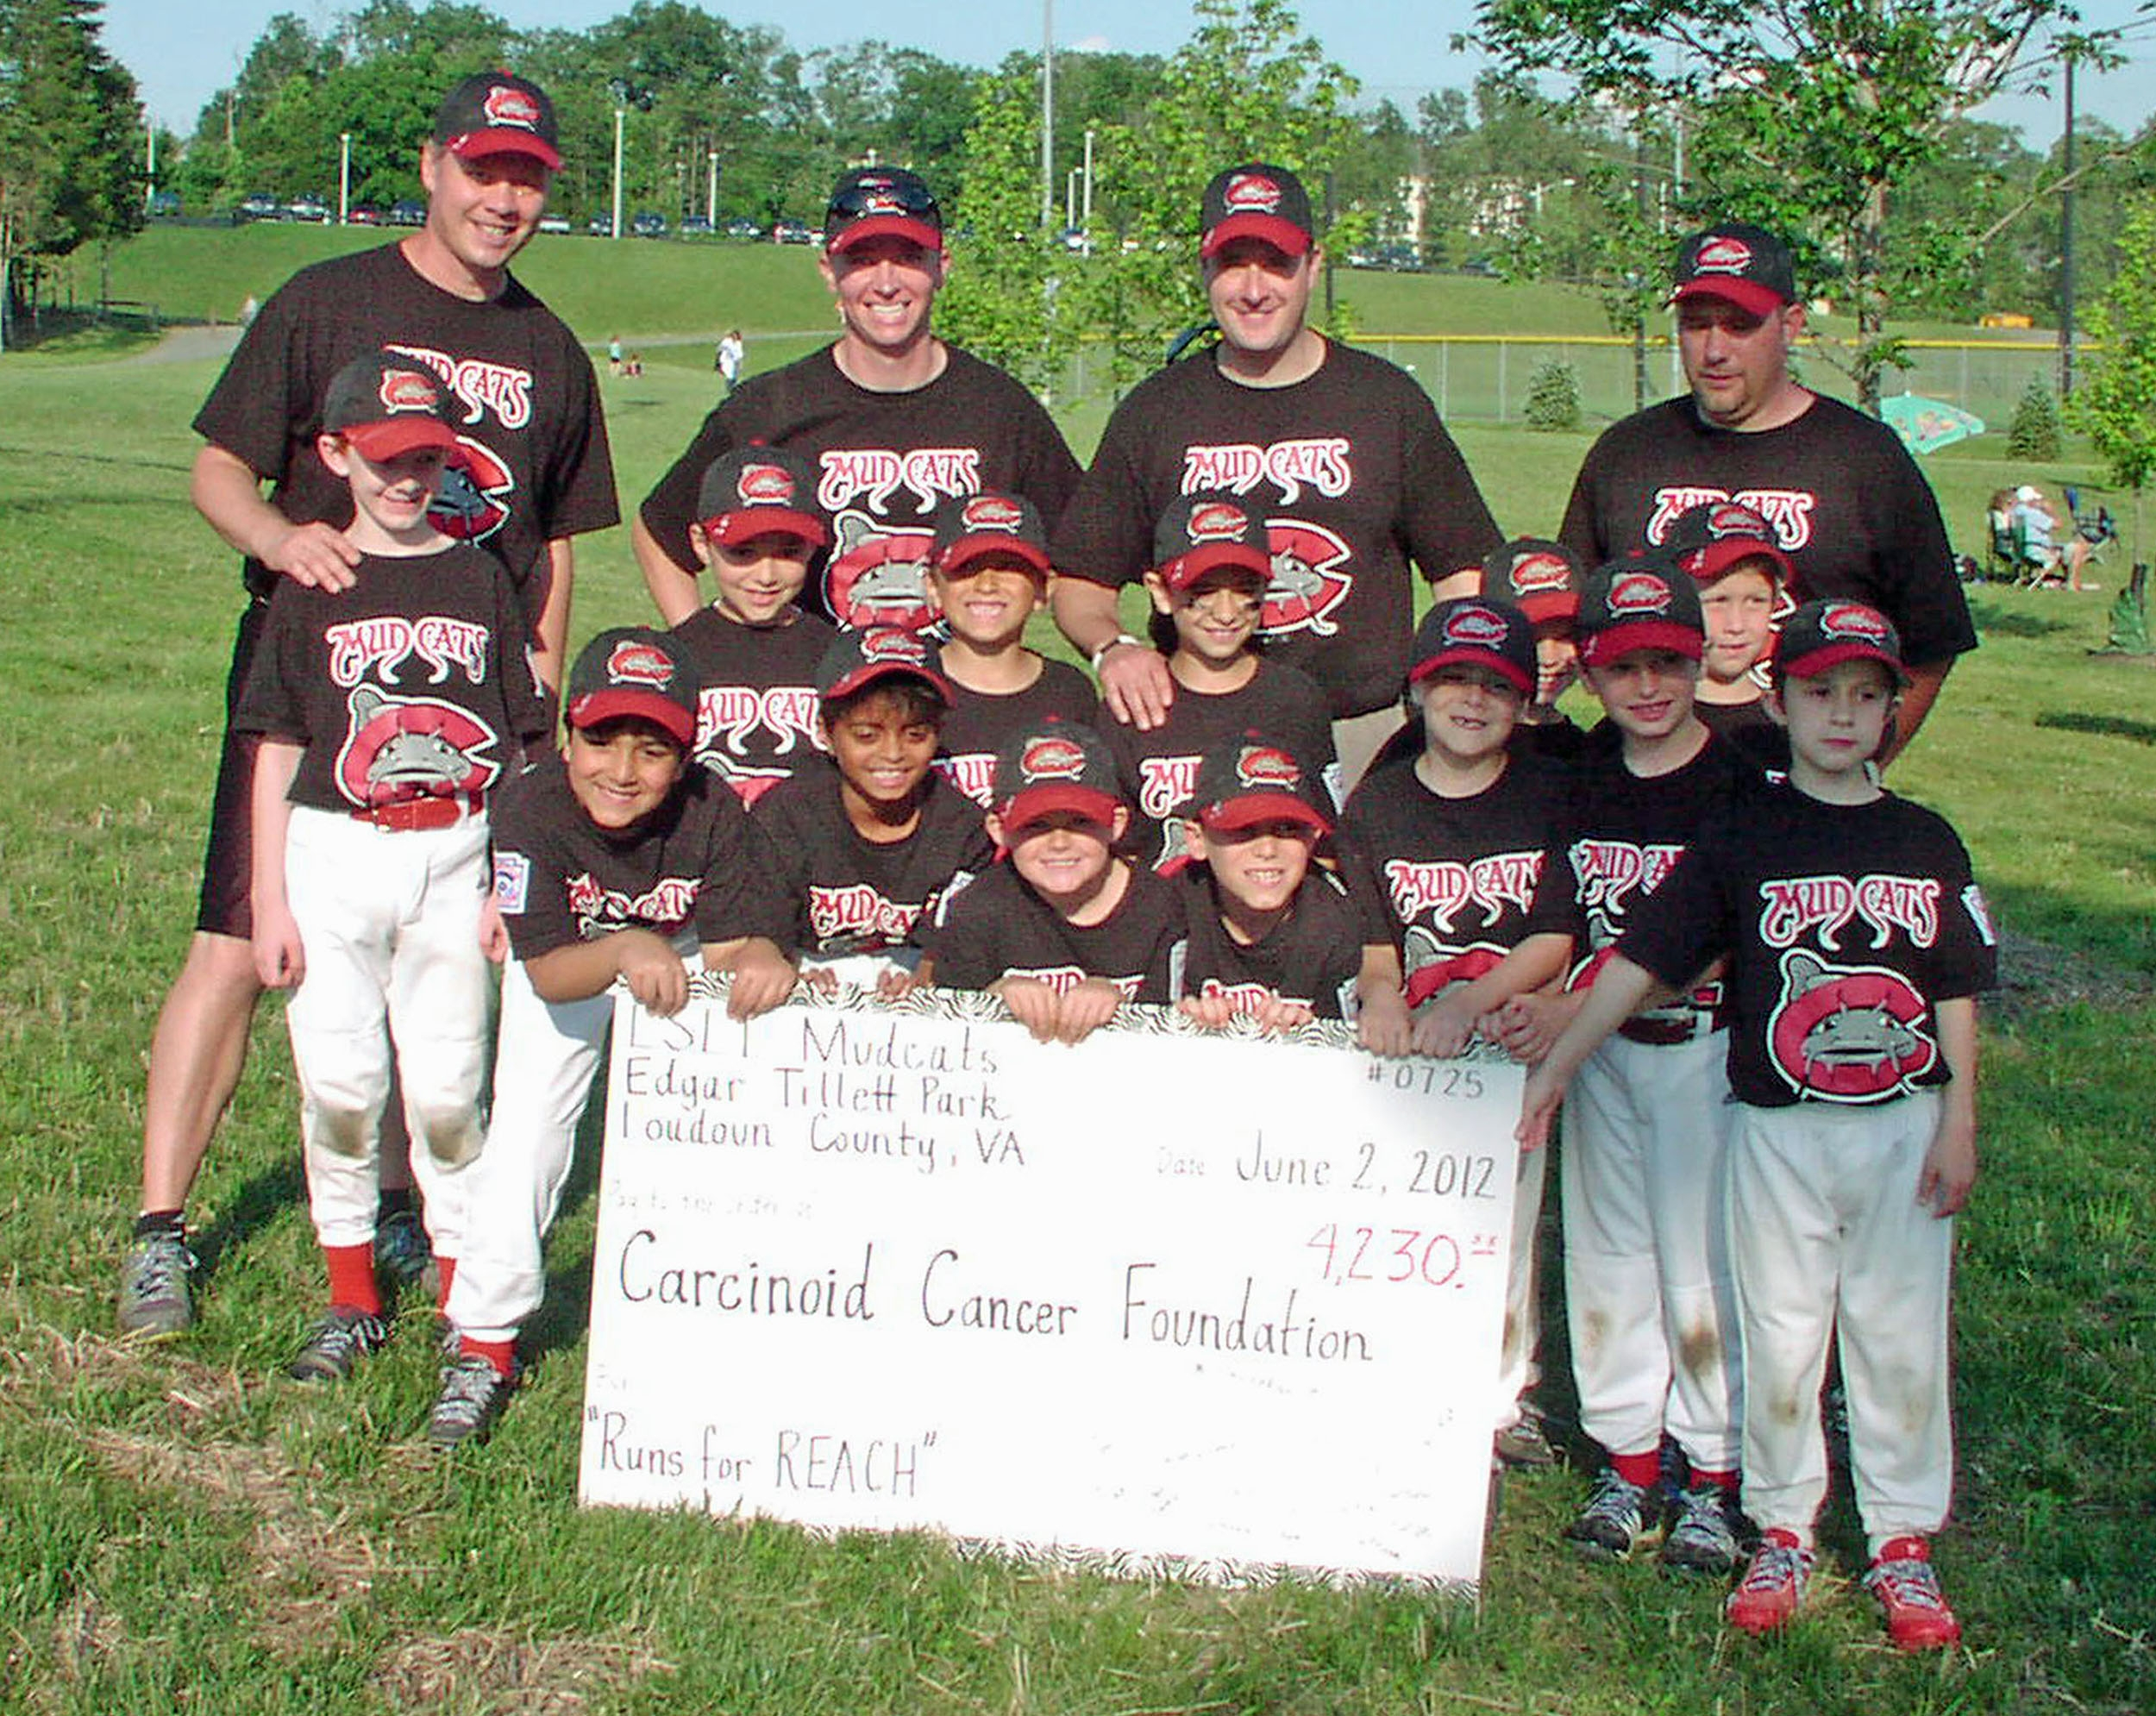 Mud Cats Little League Team in Virginia Raises Awareness about Carcinoid Cancer and Funds for the Carcinoid Cancer Foundation